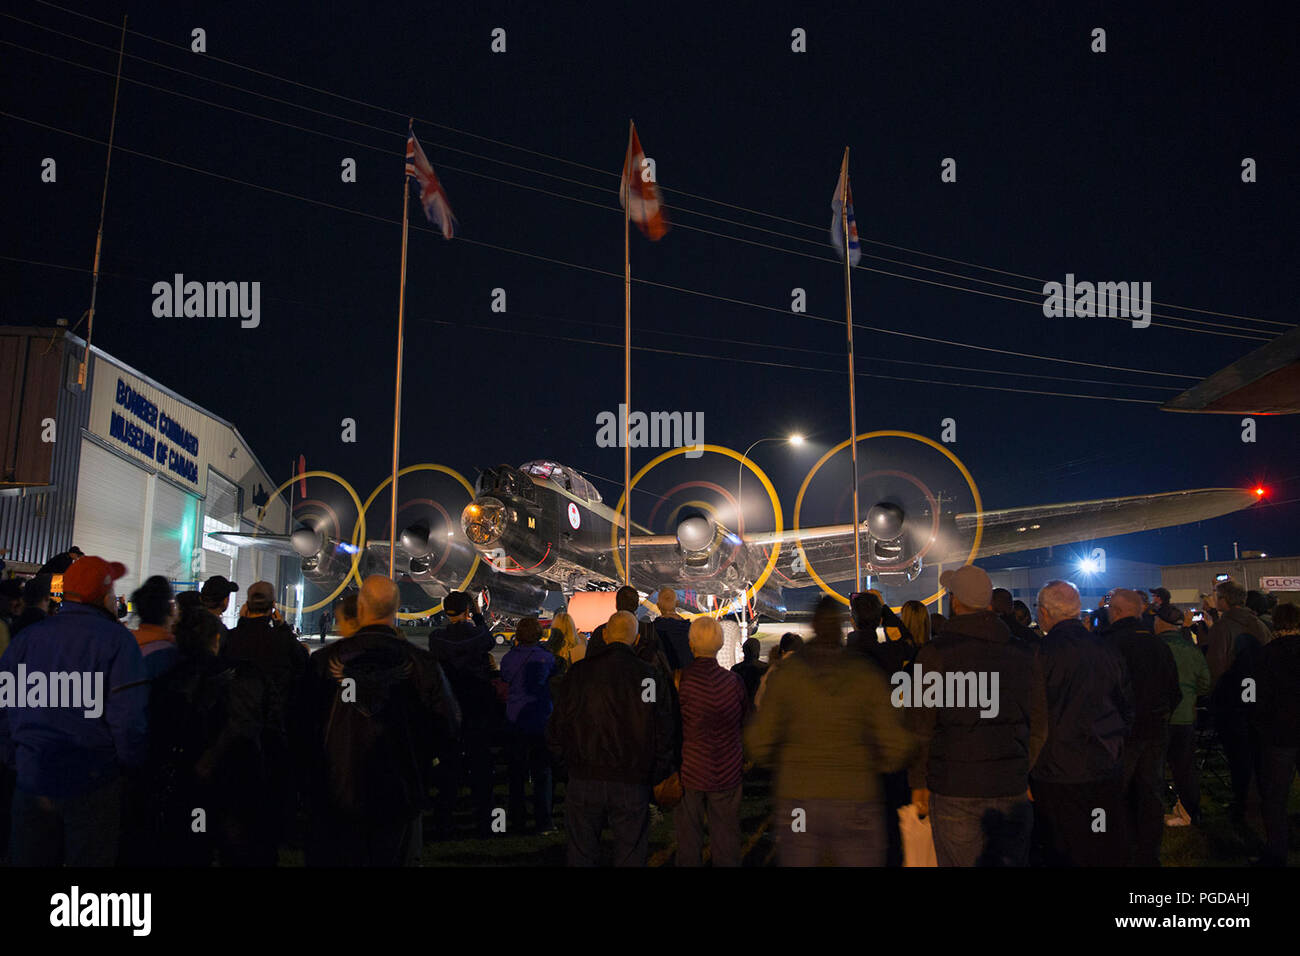 Nanton, Canada. 24th August, 2018. Visitors at the Bomber Command Museum of Canada watch as a Lancaster Bomber is started up during a night engine run. The event is part of a 75th anniversary commemoration of the Dambusters Raid during World War II. Rosanne Tackaberry/Alamy Live News Stock Photo